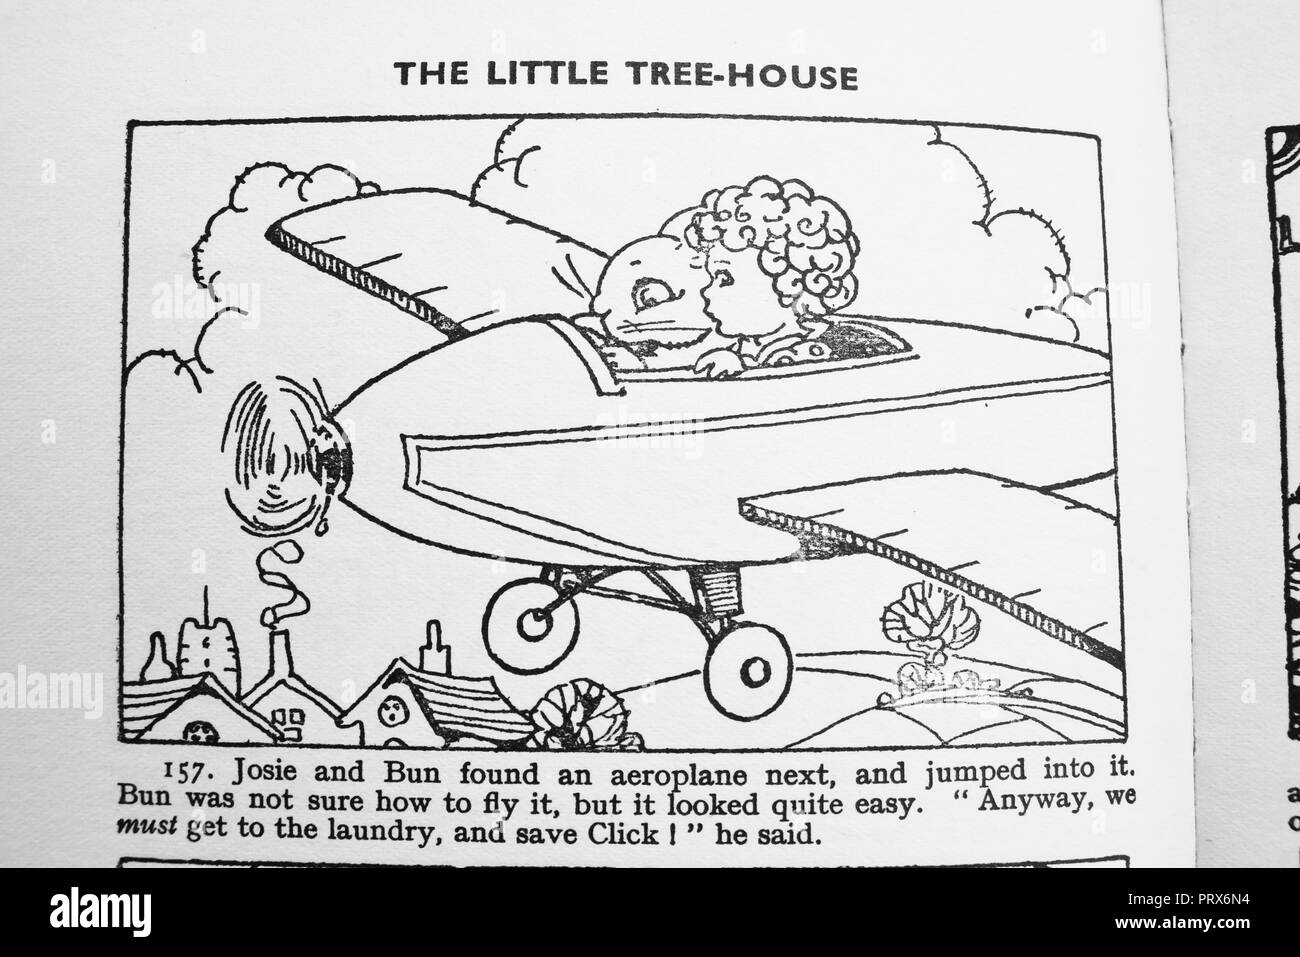 Theft. Illustration and caption from Josie, Click and Bun and the Little Tree House by Enid Blyton. Stealing a plane. Illustrated by Dorothy M Wheeler - Stock Image